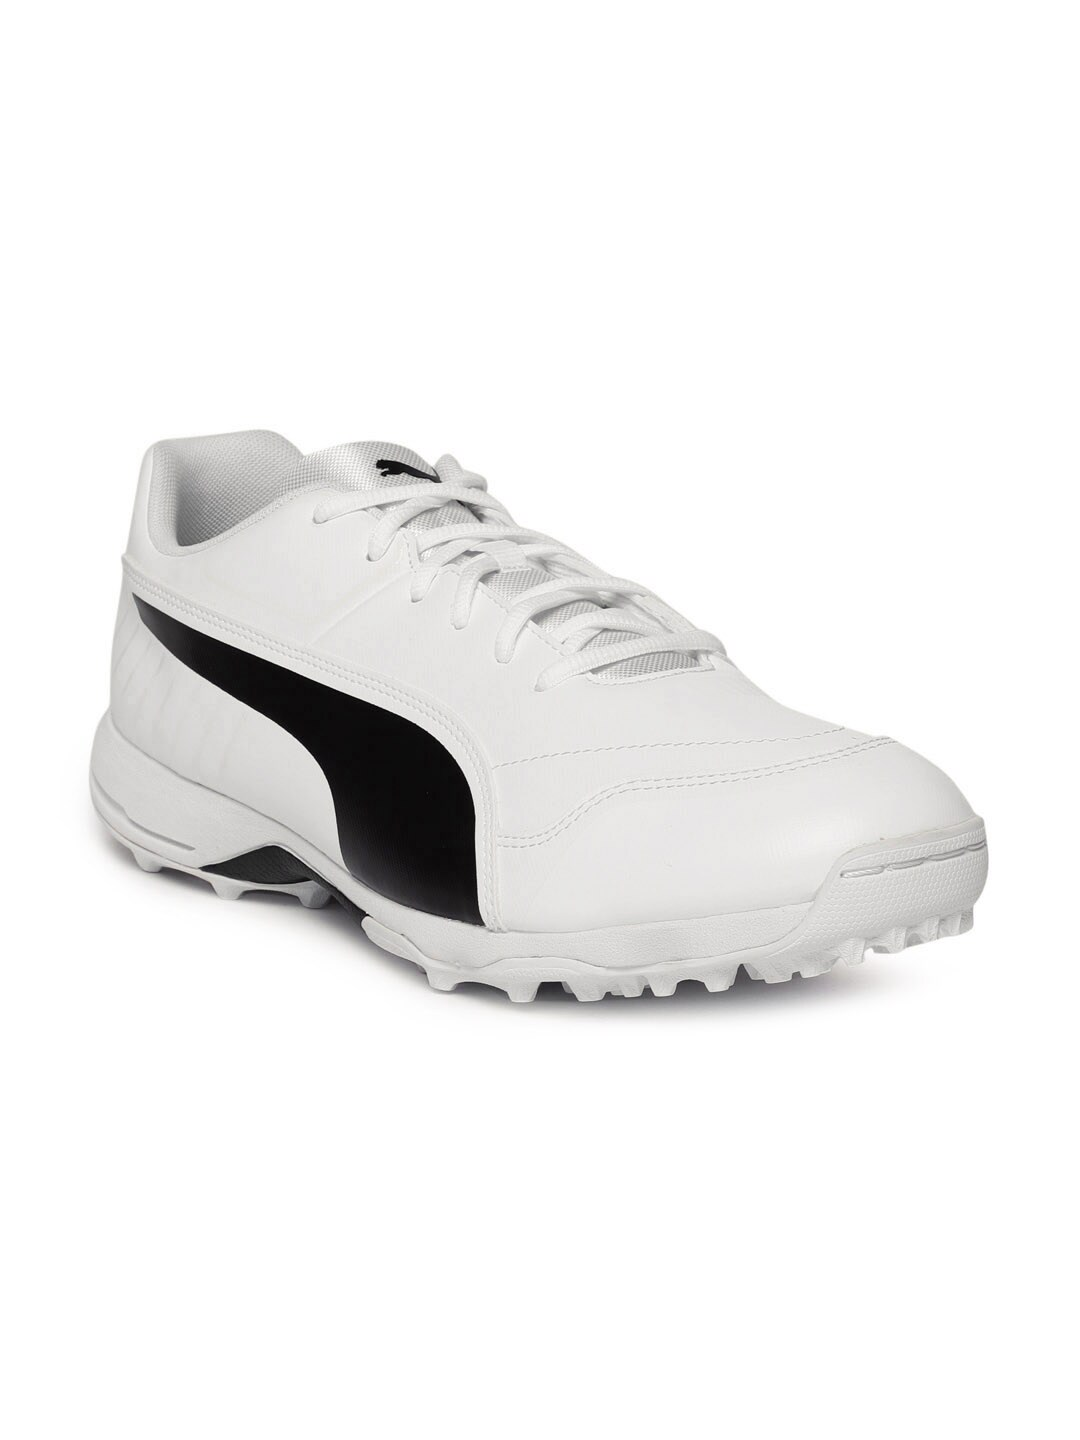 fc0e1c956 Cricket Shoes - Buy Cricket Shoes Online at Best Price